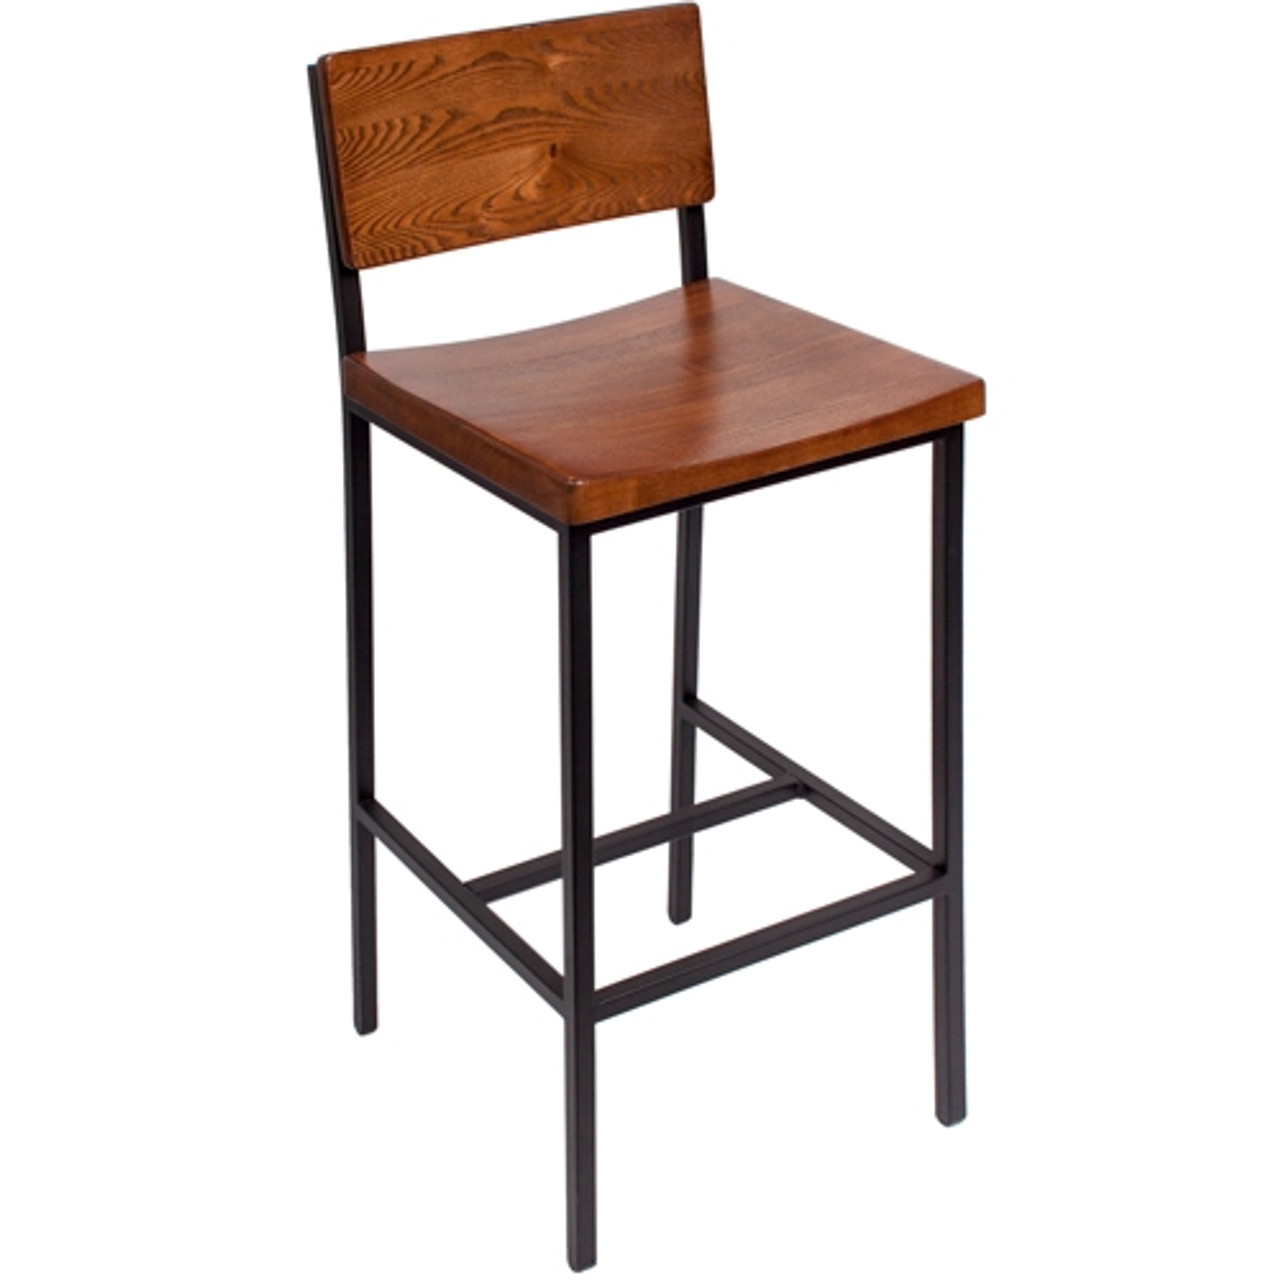 Picture of: Industrial Bar Stools Bfm Seating Memphis Industrial Furniture